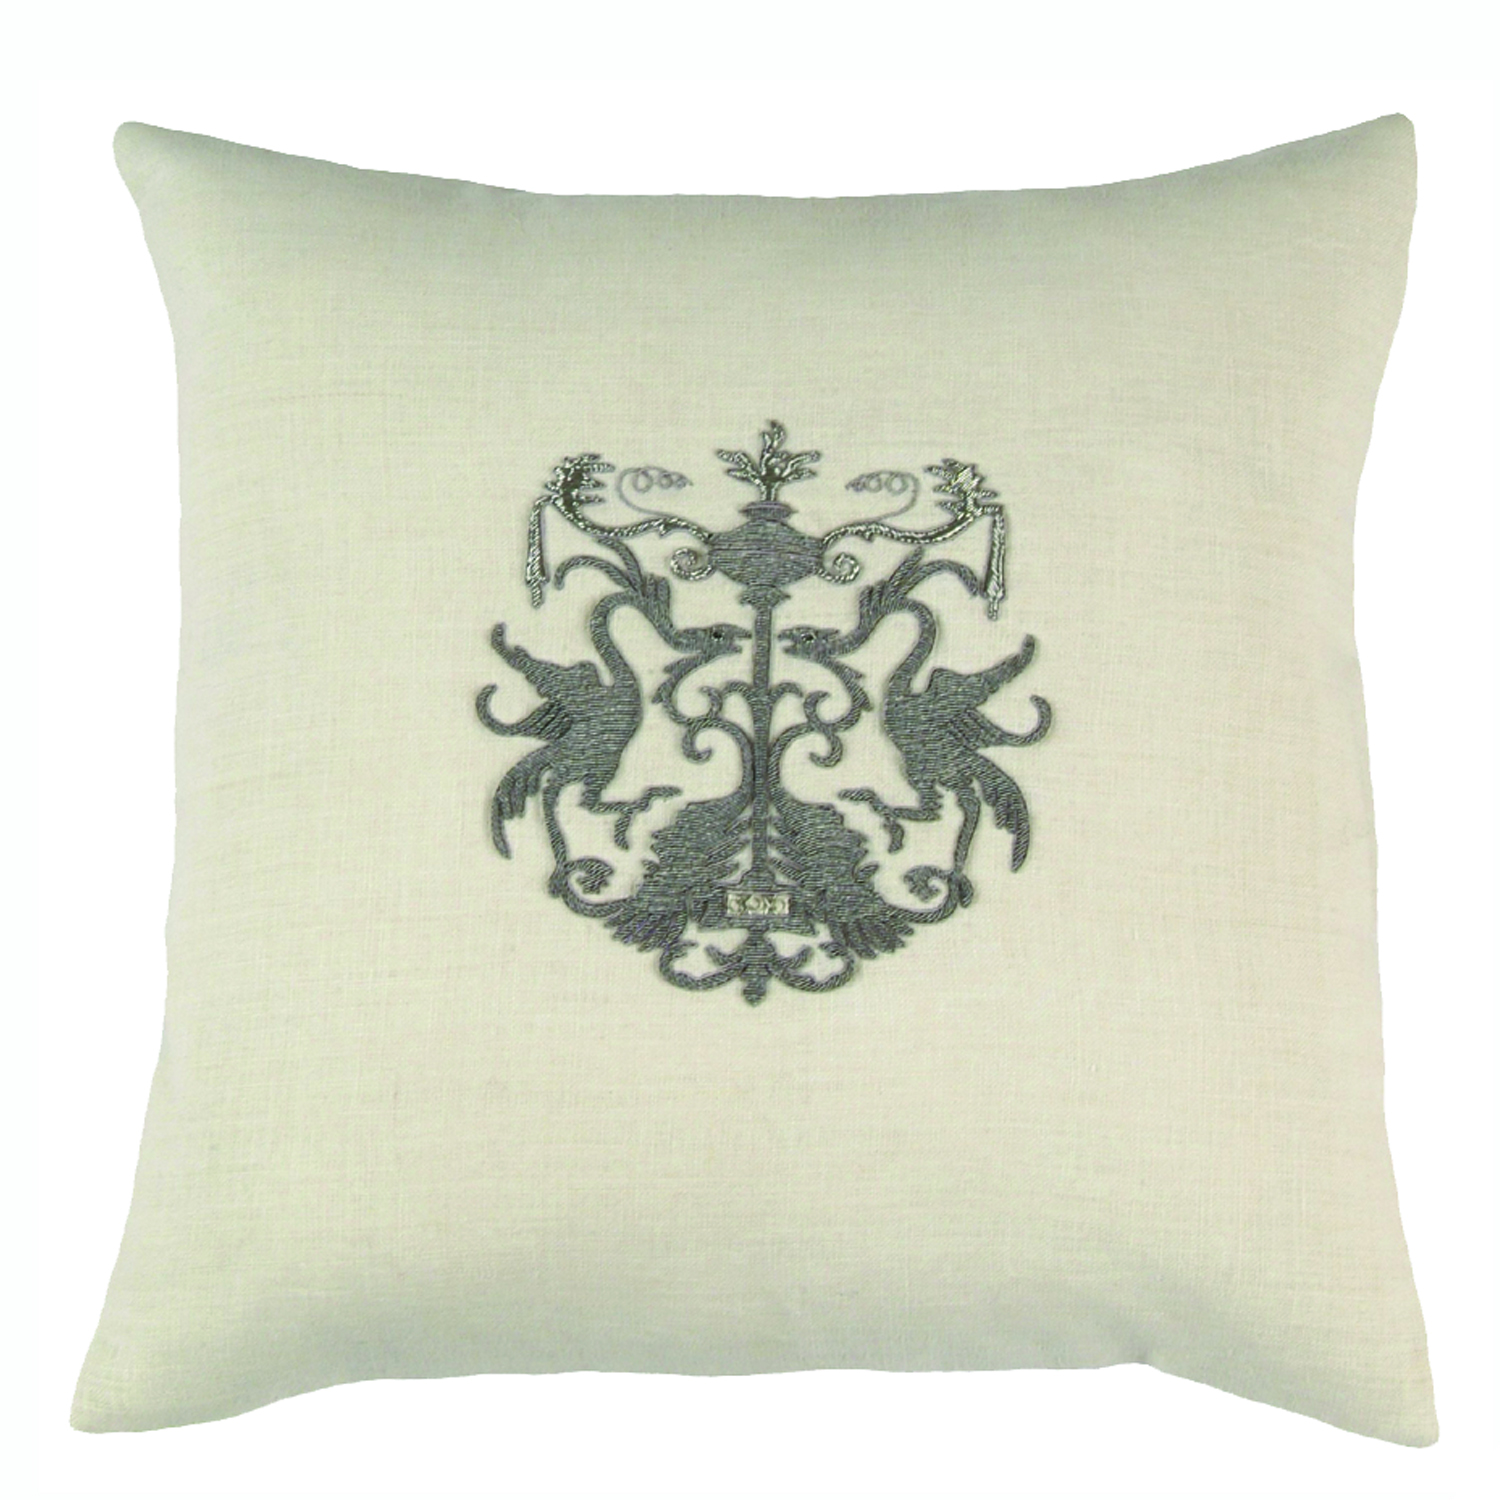 Lili Alessandra Crest Square Pillow in White Linen